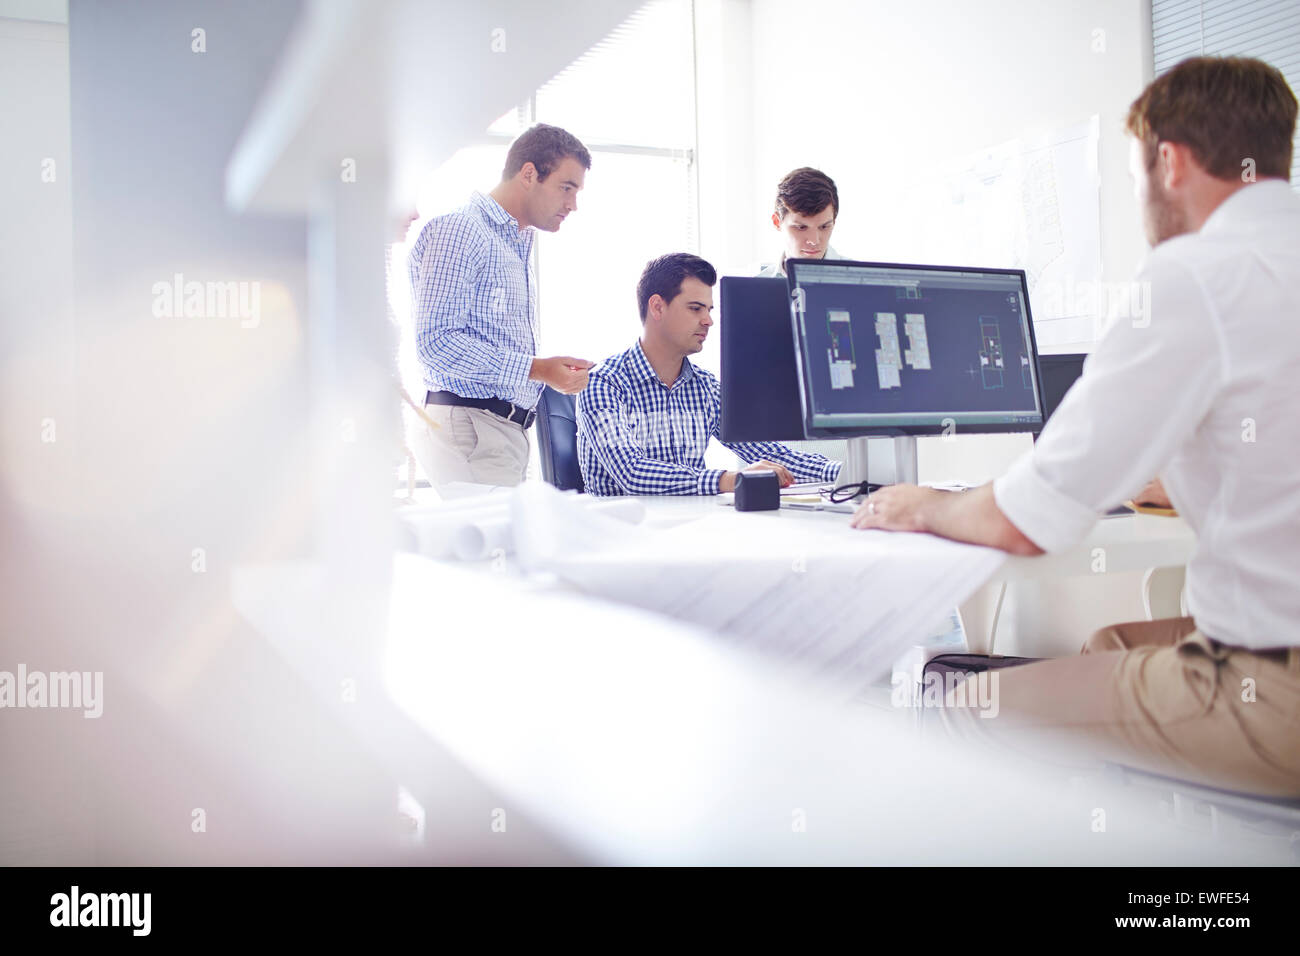 Architects drafting blueprints at computers in office - Stock Image